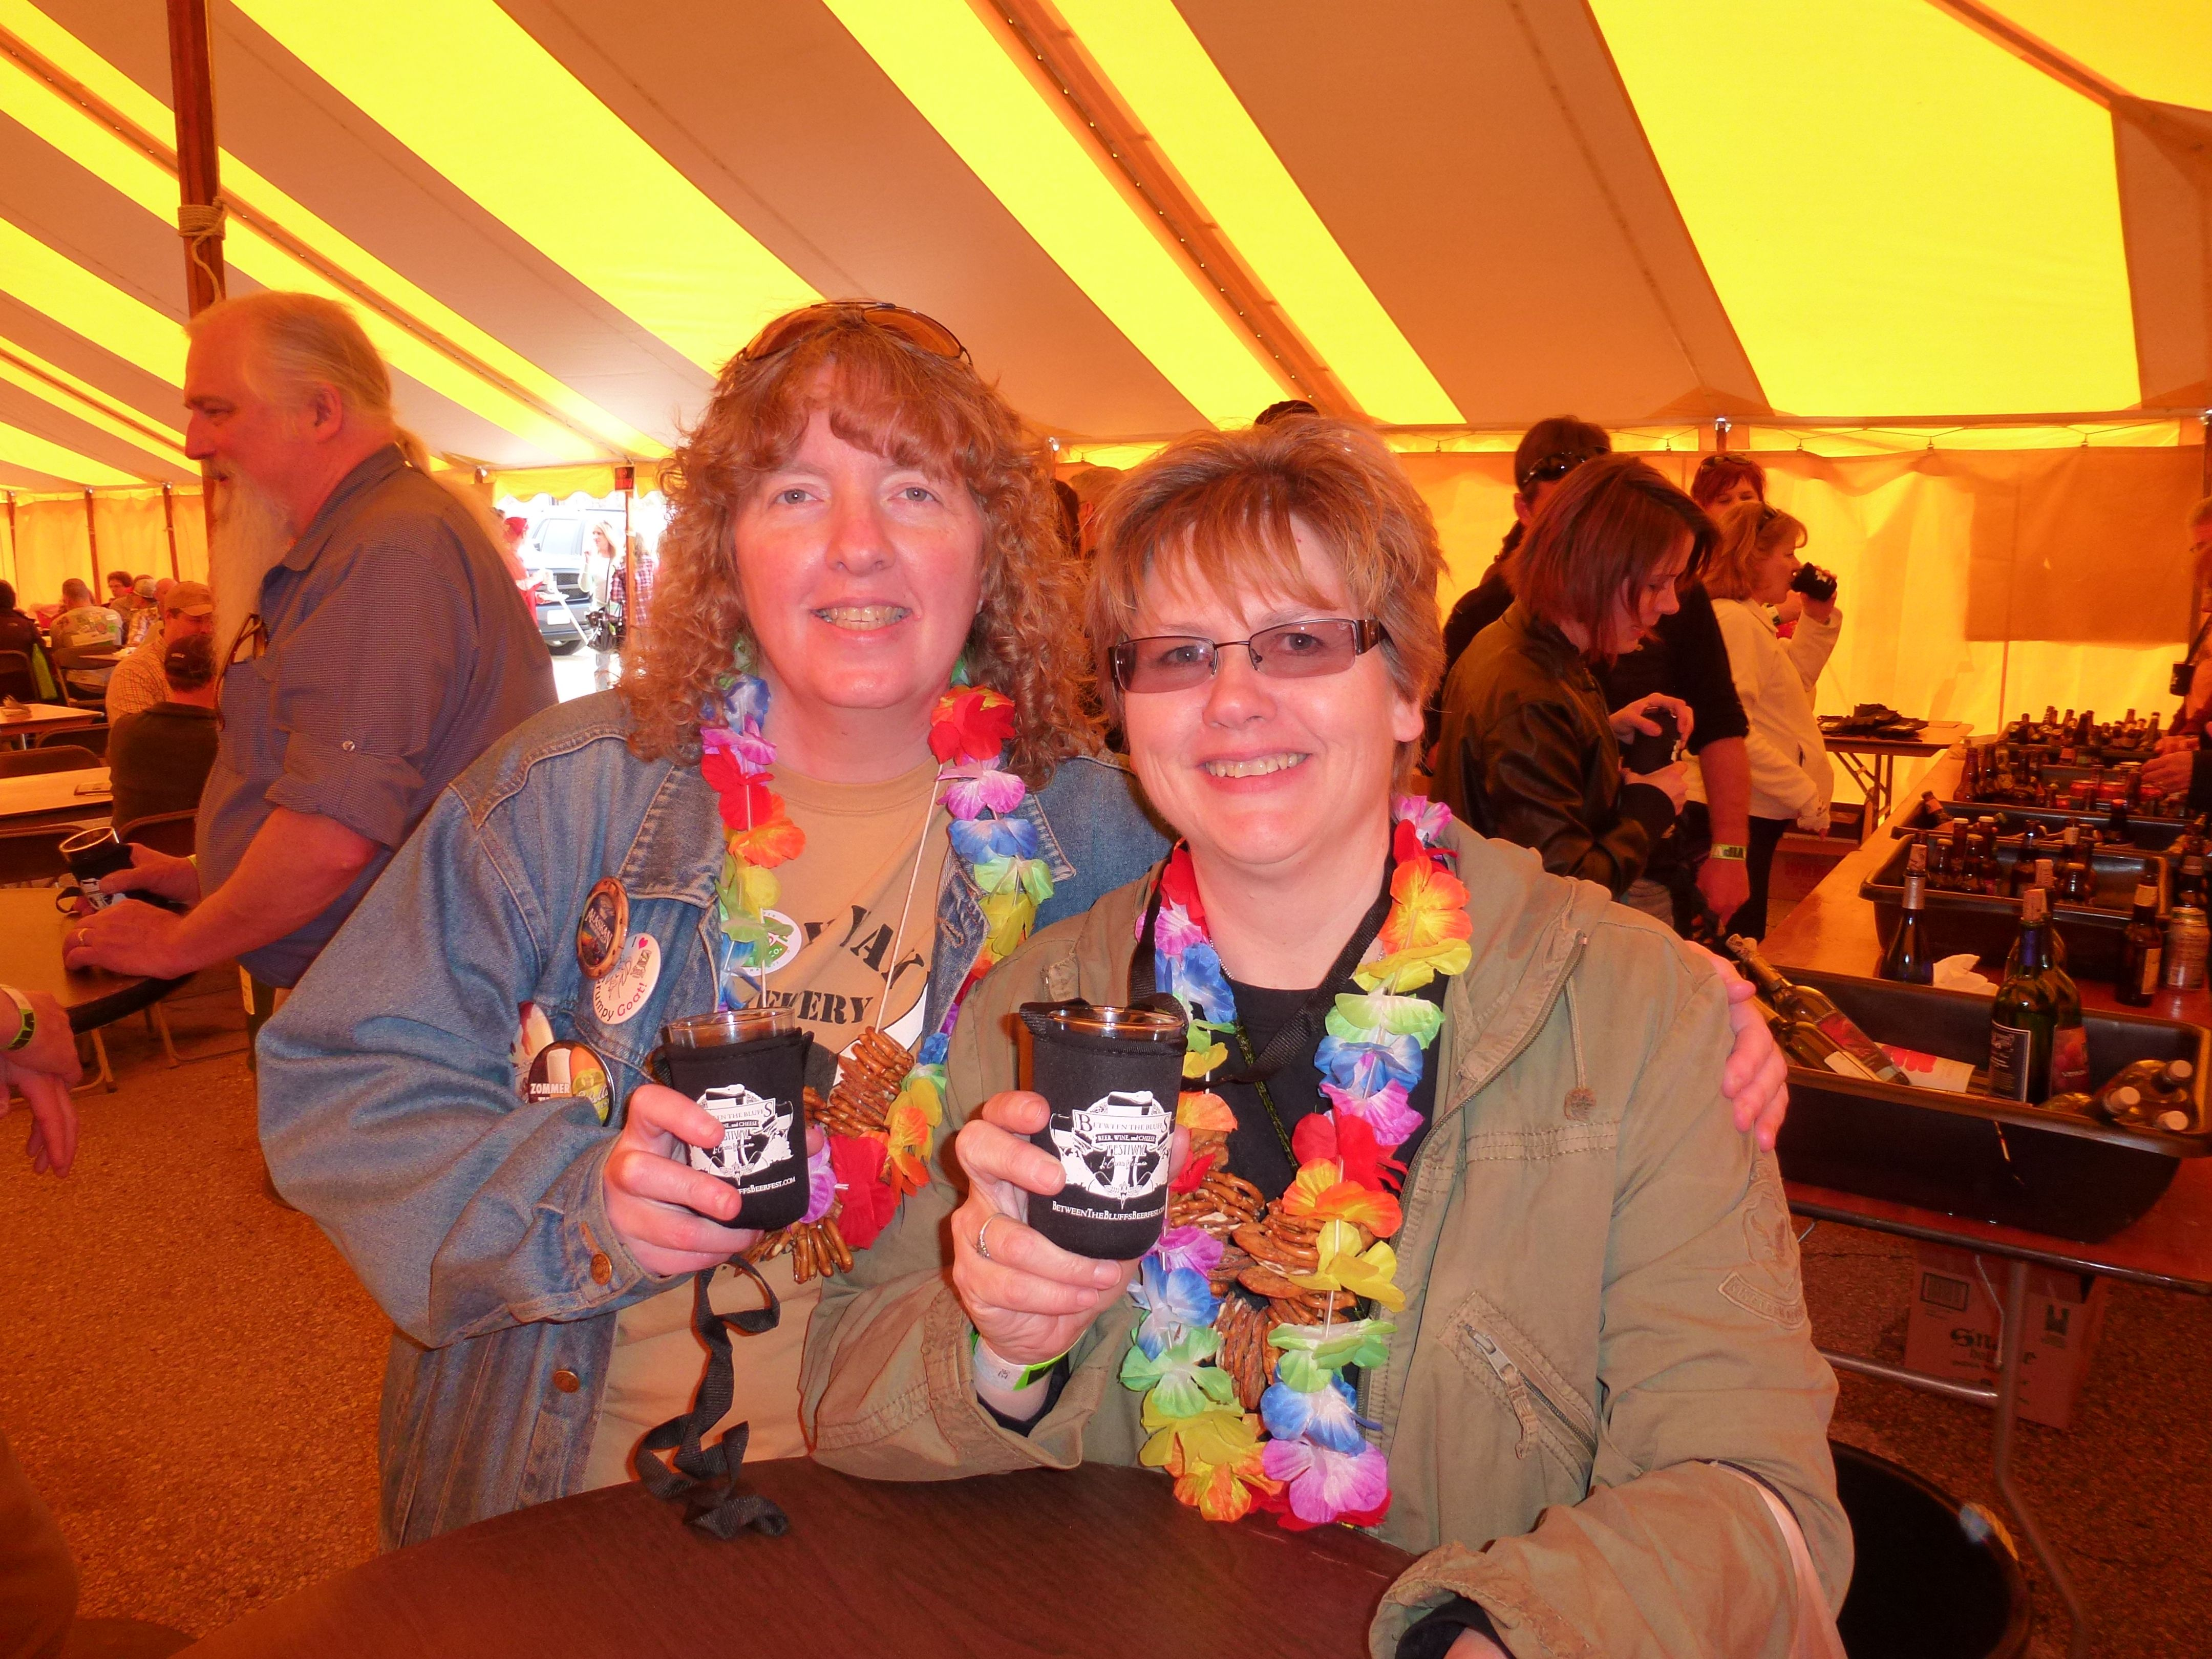 Enjoying Beer Samples Free Food And Gifts In The Vip Tent At 2014 Between The Bluffs Festival La Crosse Wis Craft Beer Festival Beer Festival British Beer